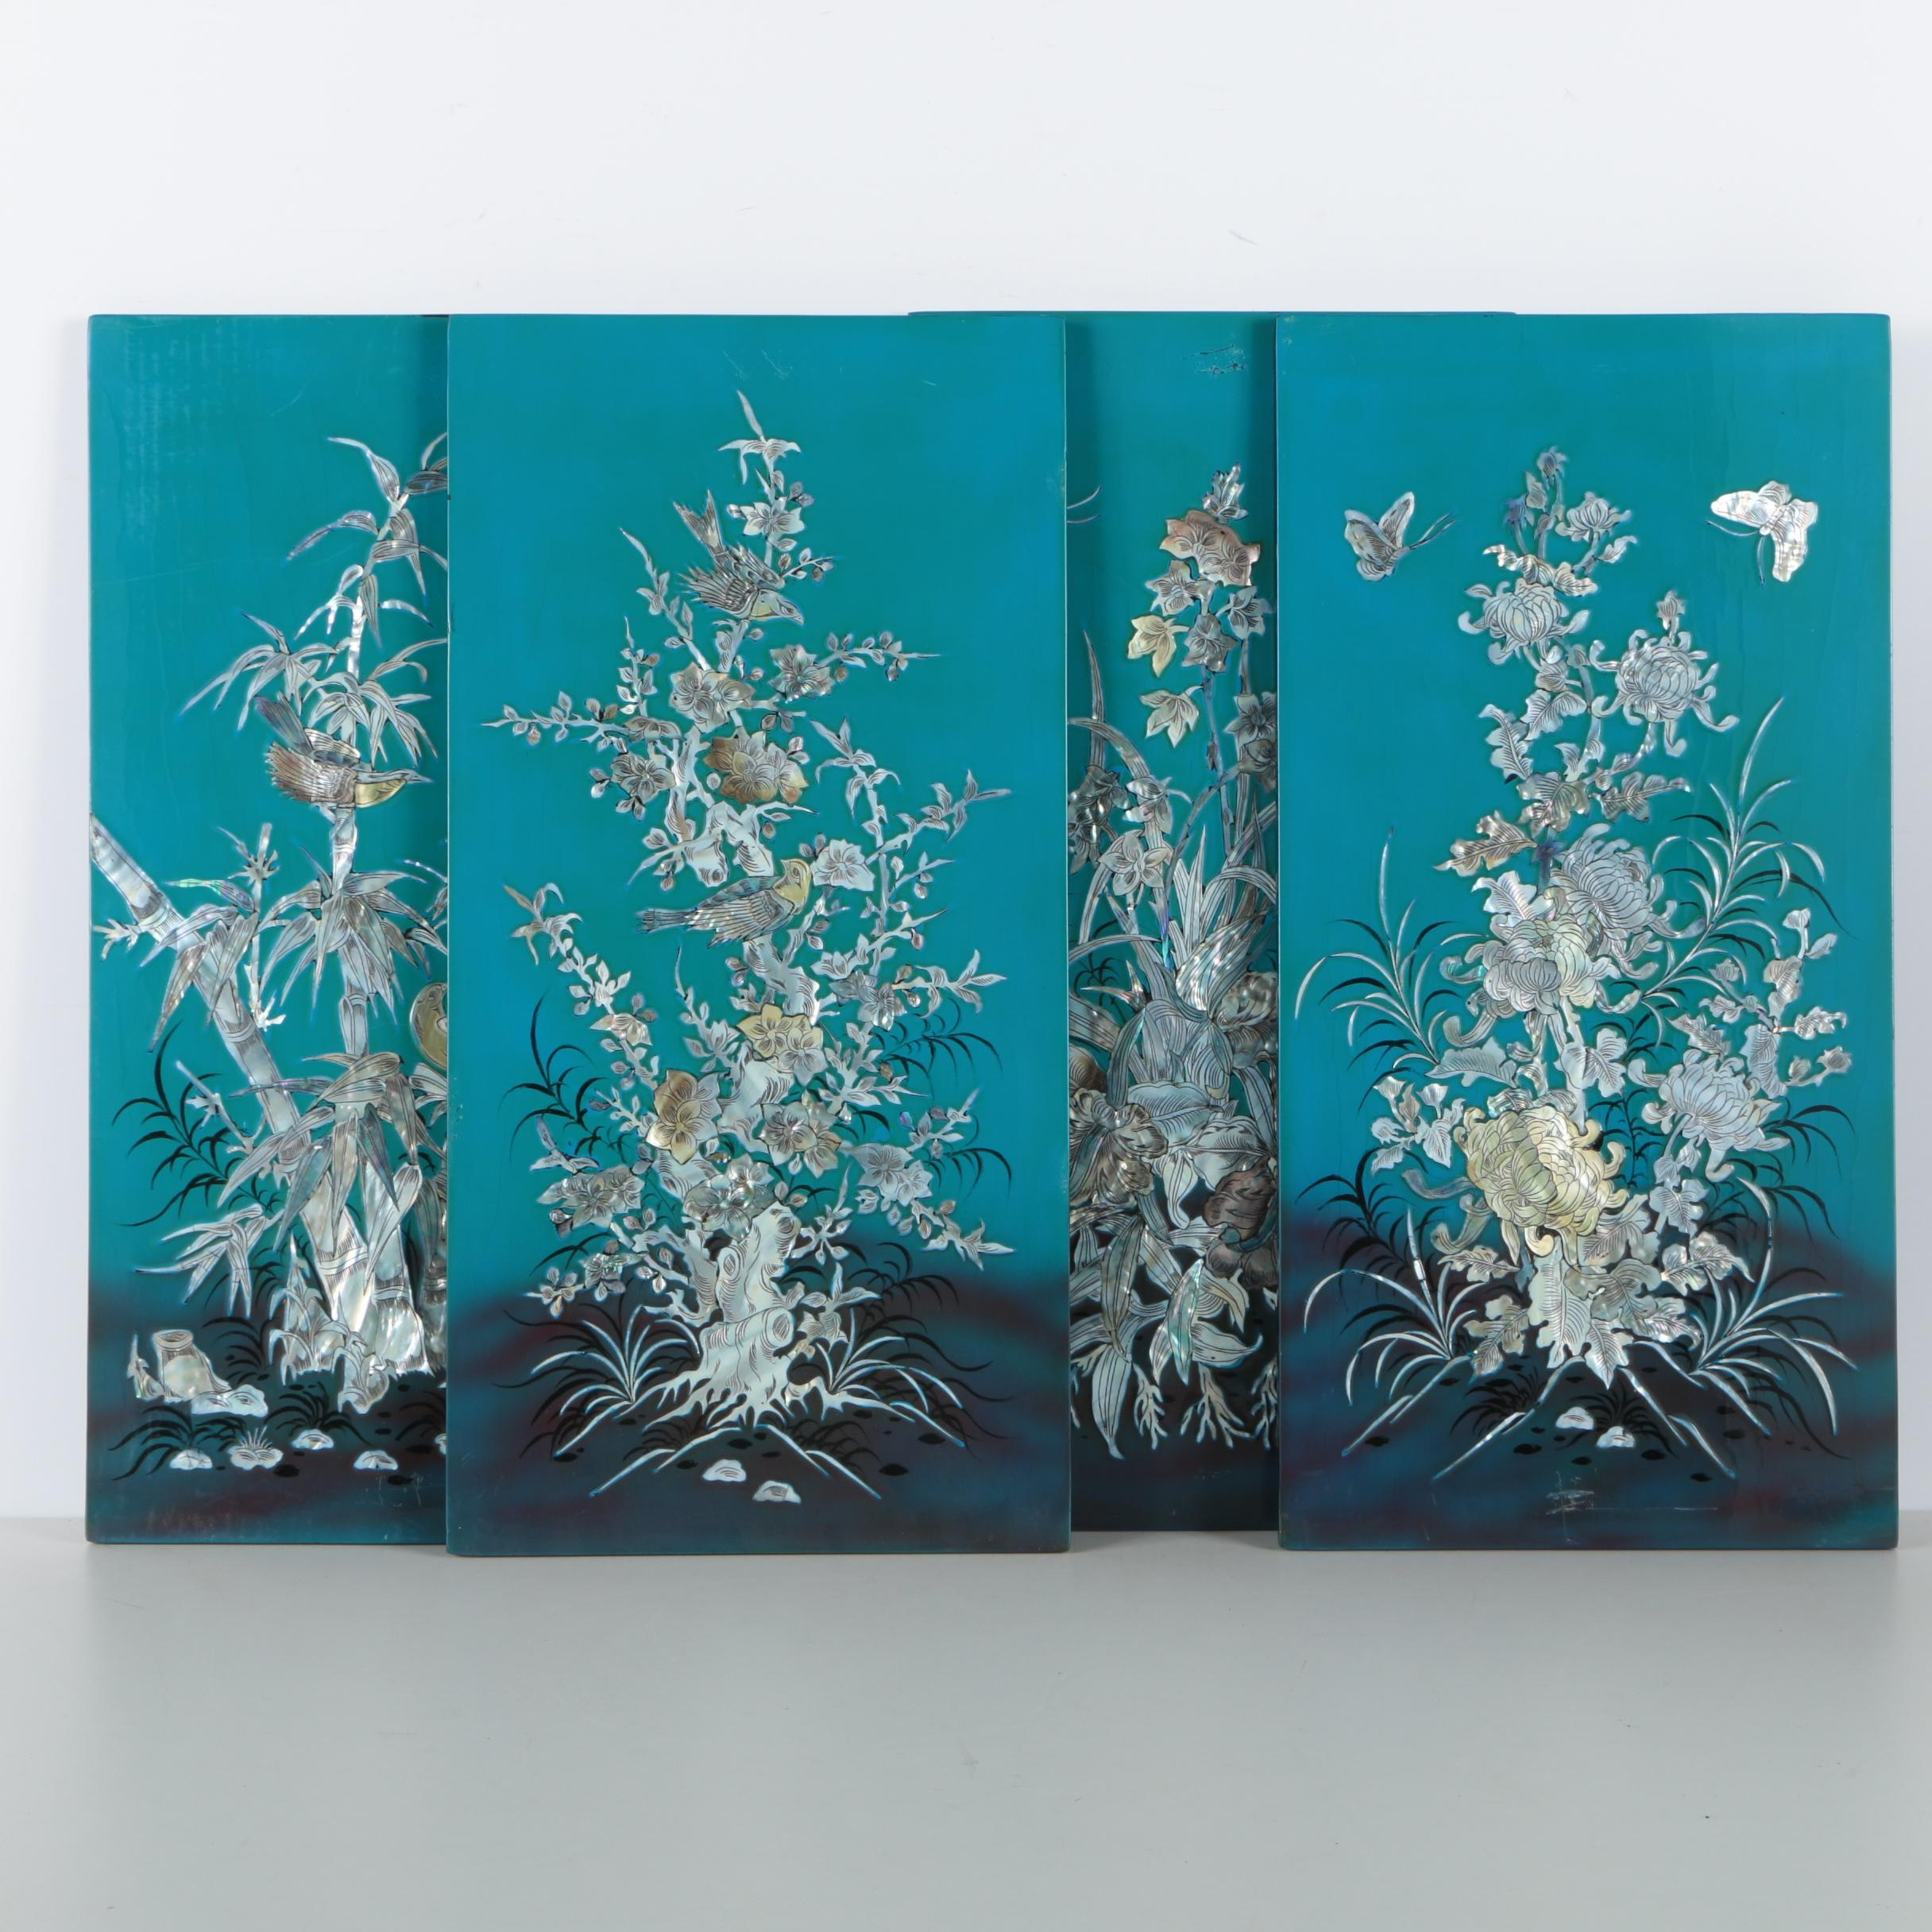 Vietnamese Lacquered Wood Panels With Mother of Pearl Inlay